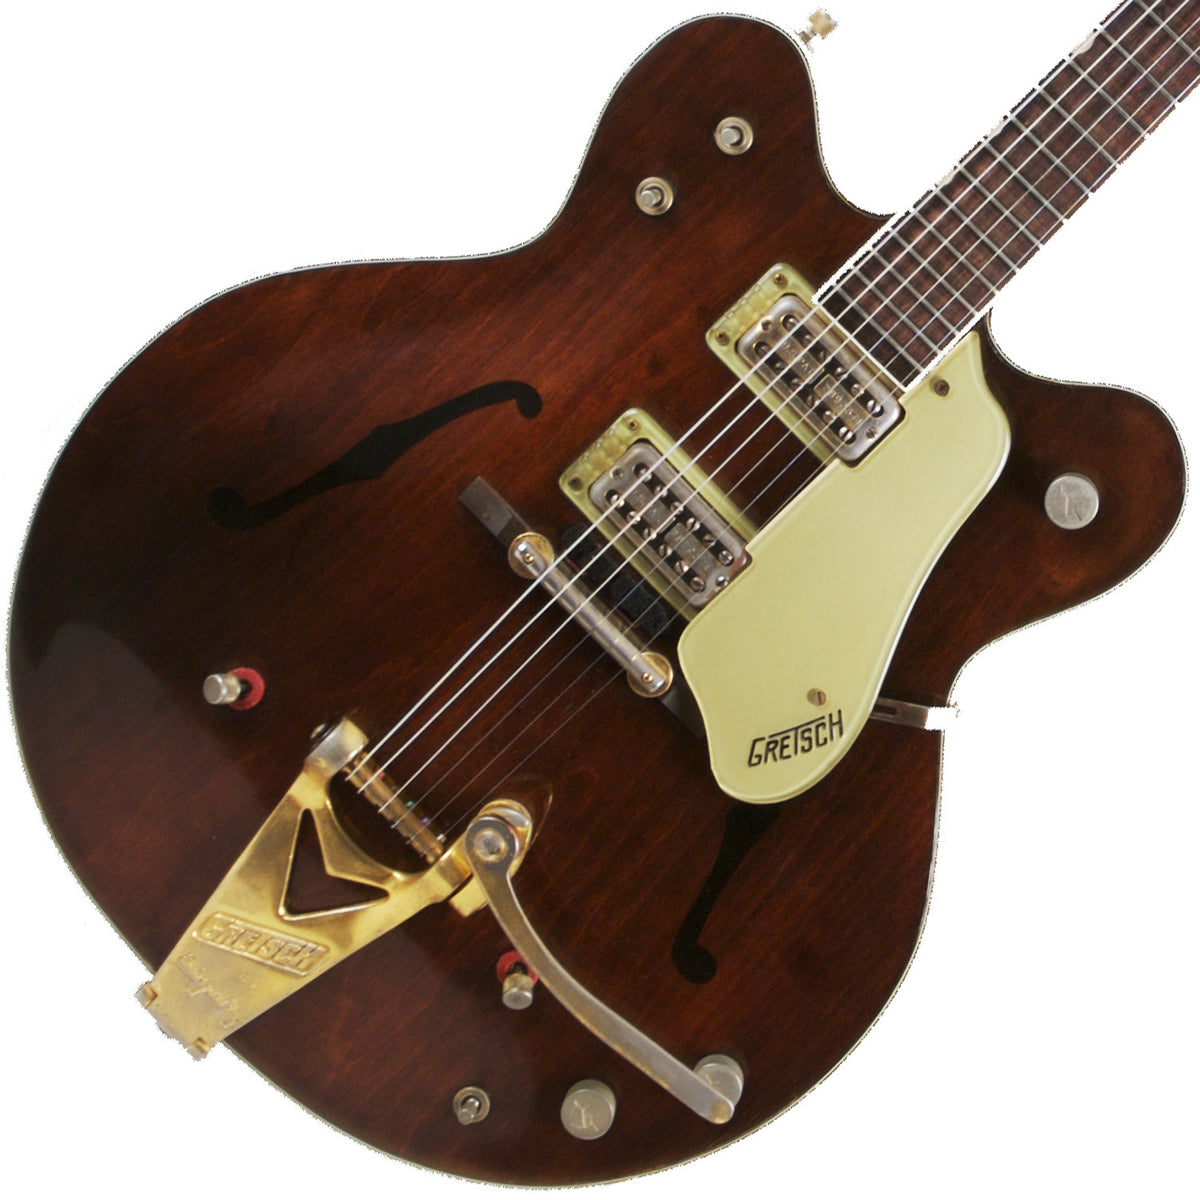 1965 Gretsch Country Gentleman Walnut - Garrett Park Guitars  - 1